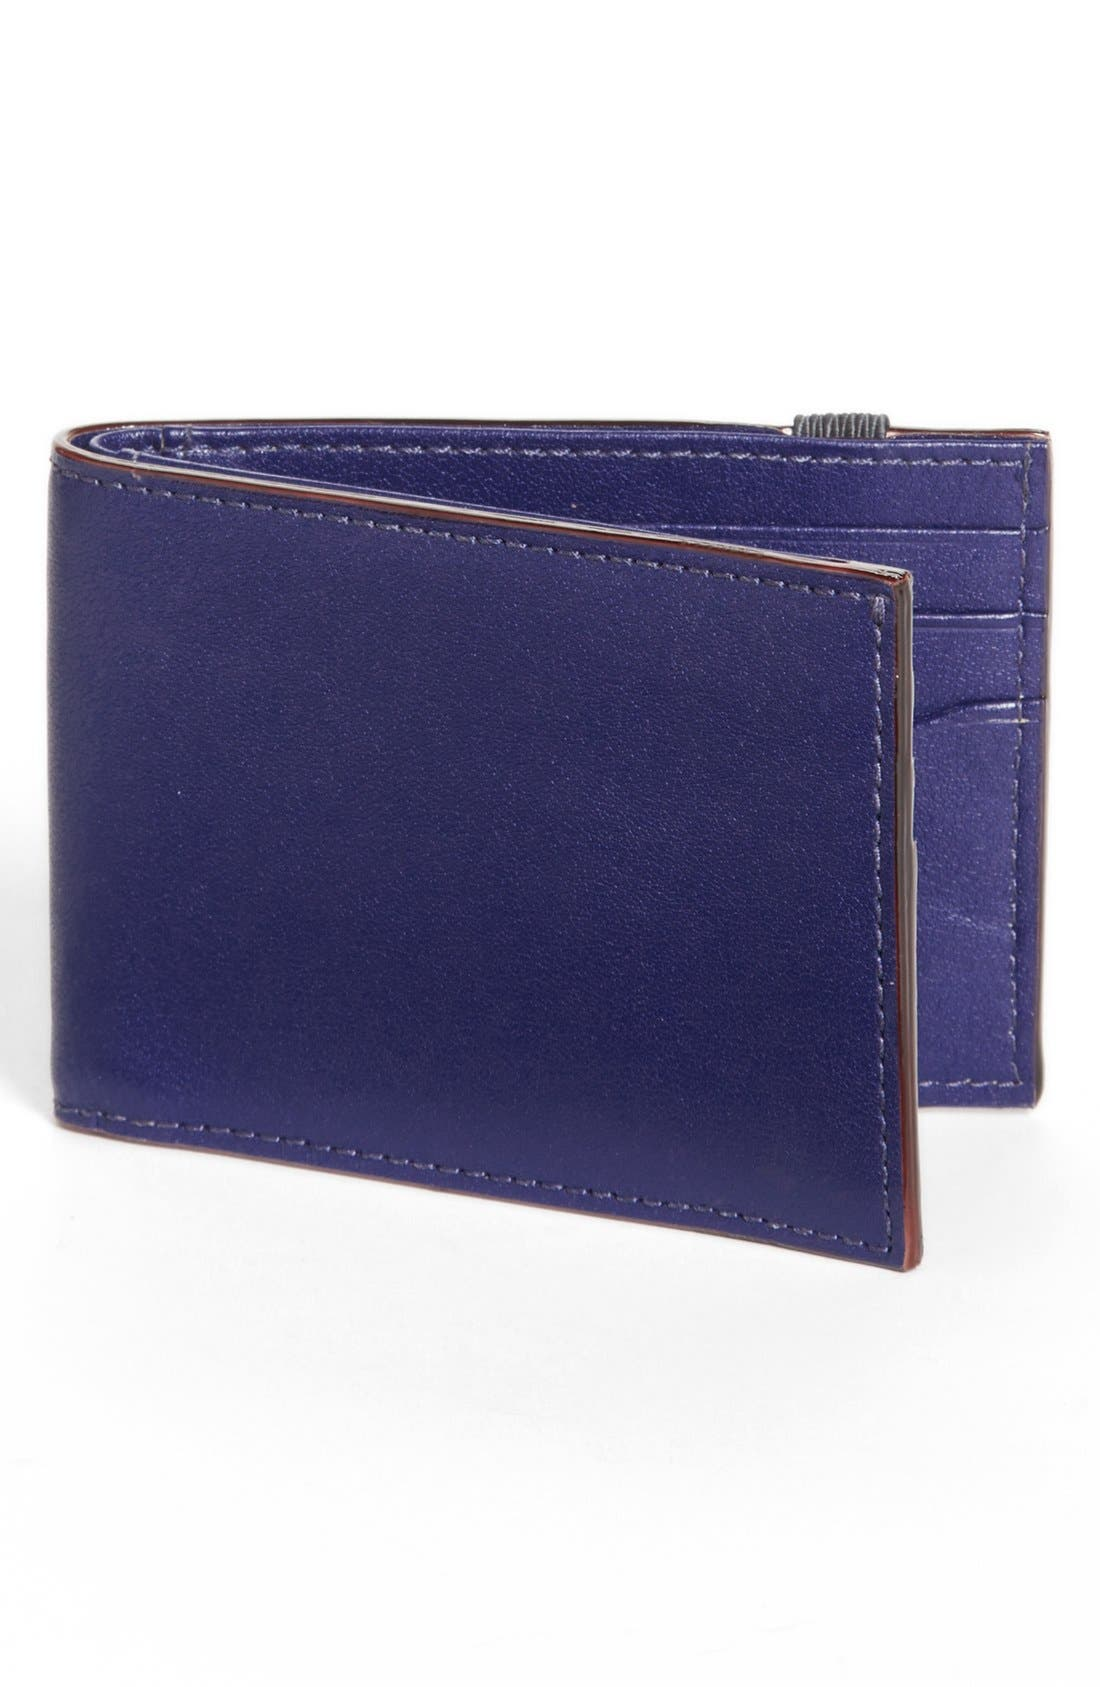 Alternate Image 1 Selected - Jack Spade Index Wallet